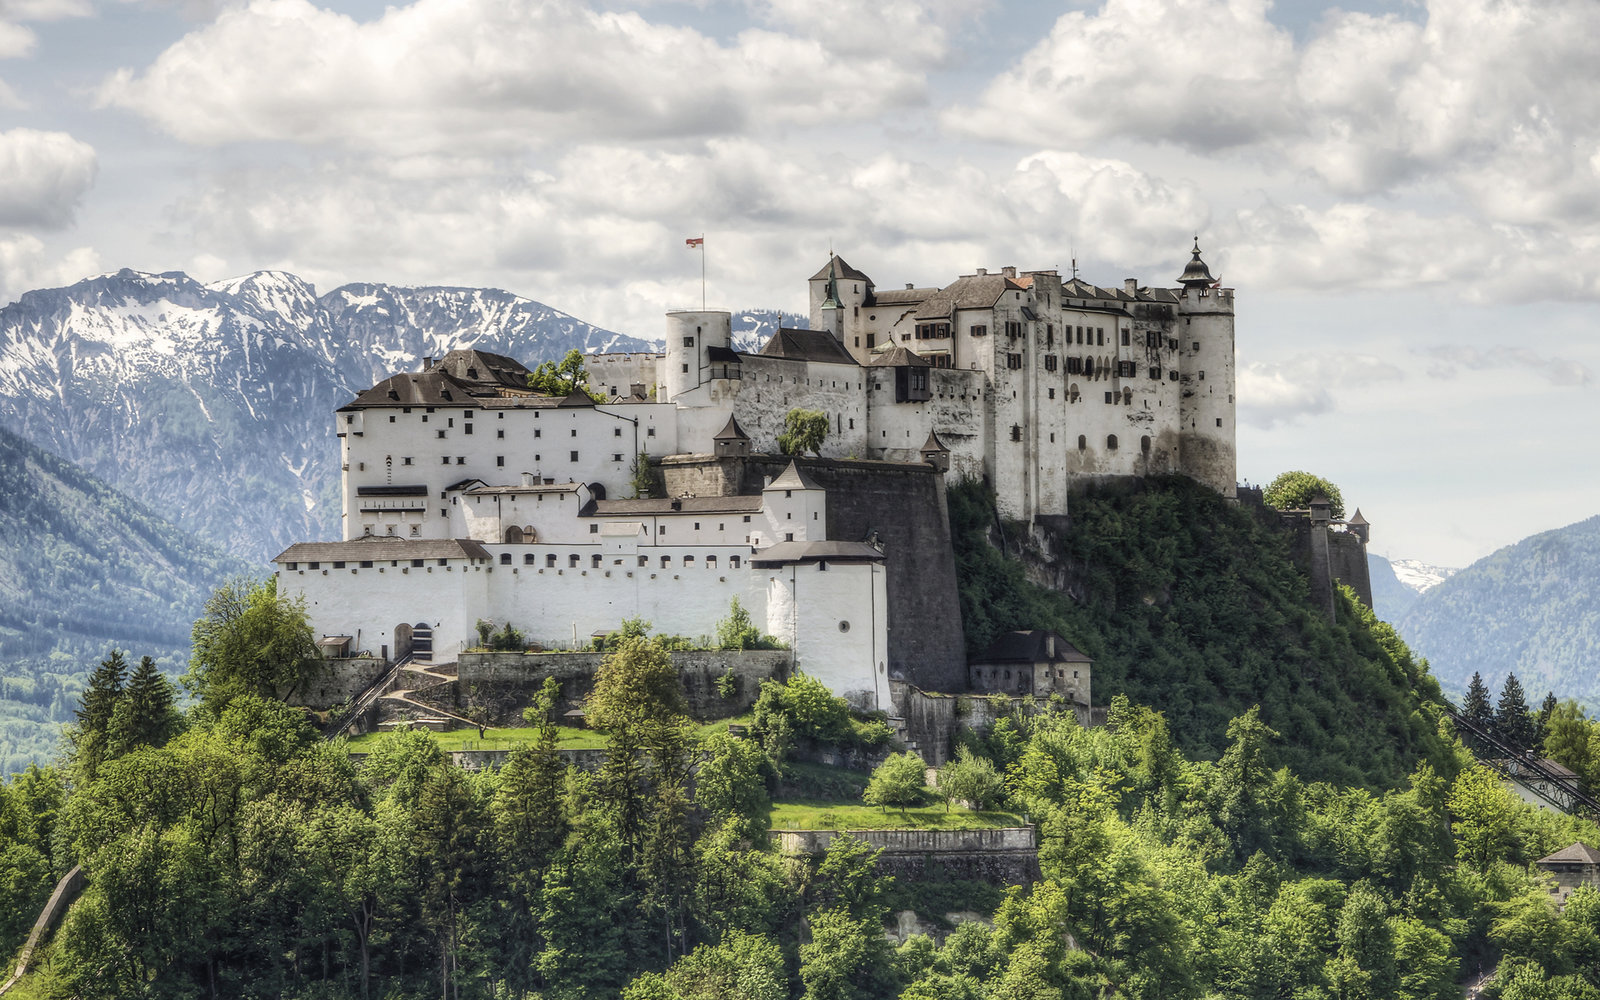 Salzburg, Austria: The Hohensalzburg Fortress in Salzburg Austria with Alps range rising in the distance. Built over several hundred years (from the 11th to 16th centures), it is one of the largest medieval castles in Europe with a length of 250 m (820 ft